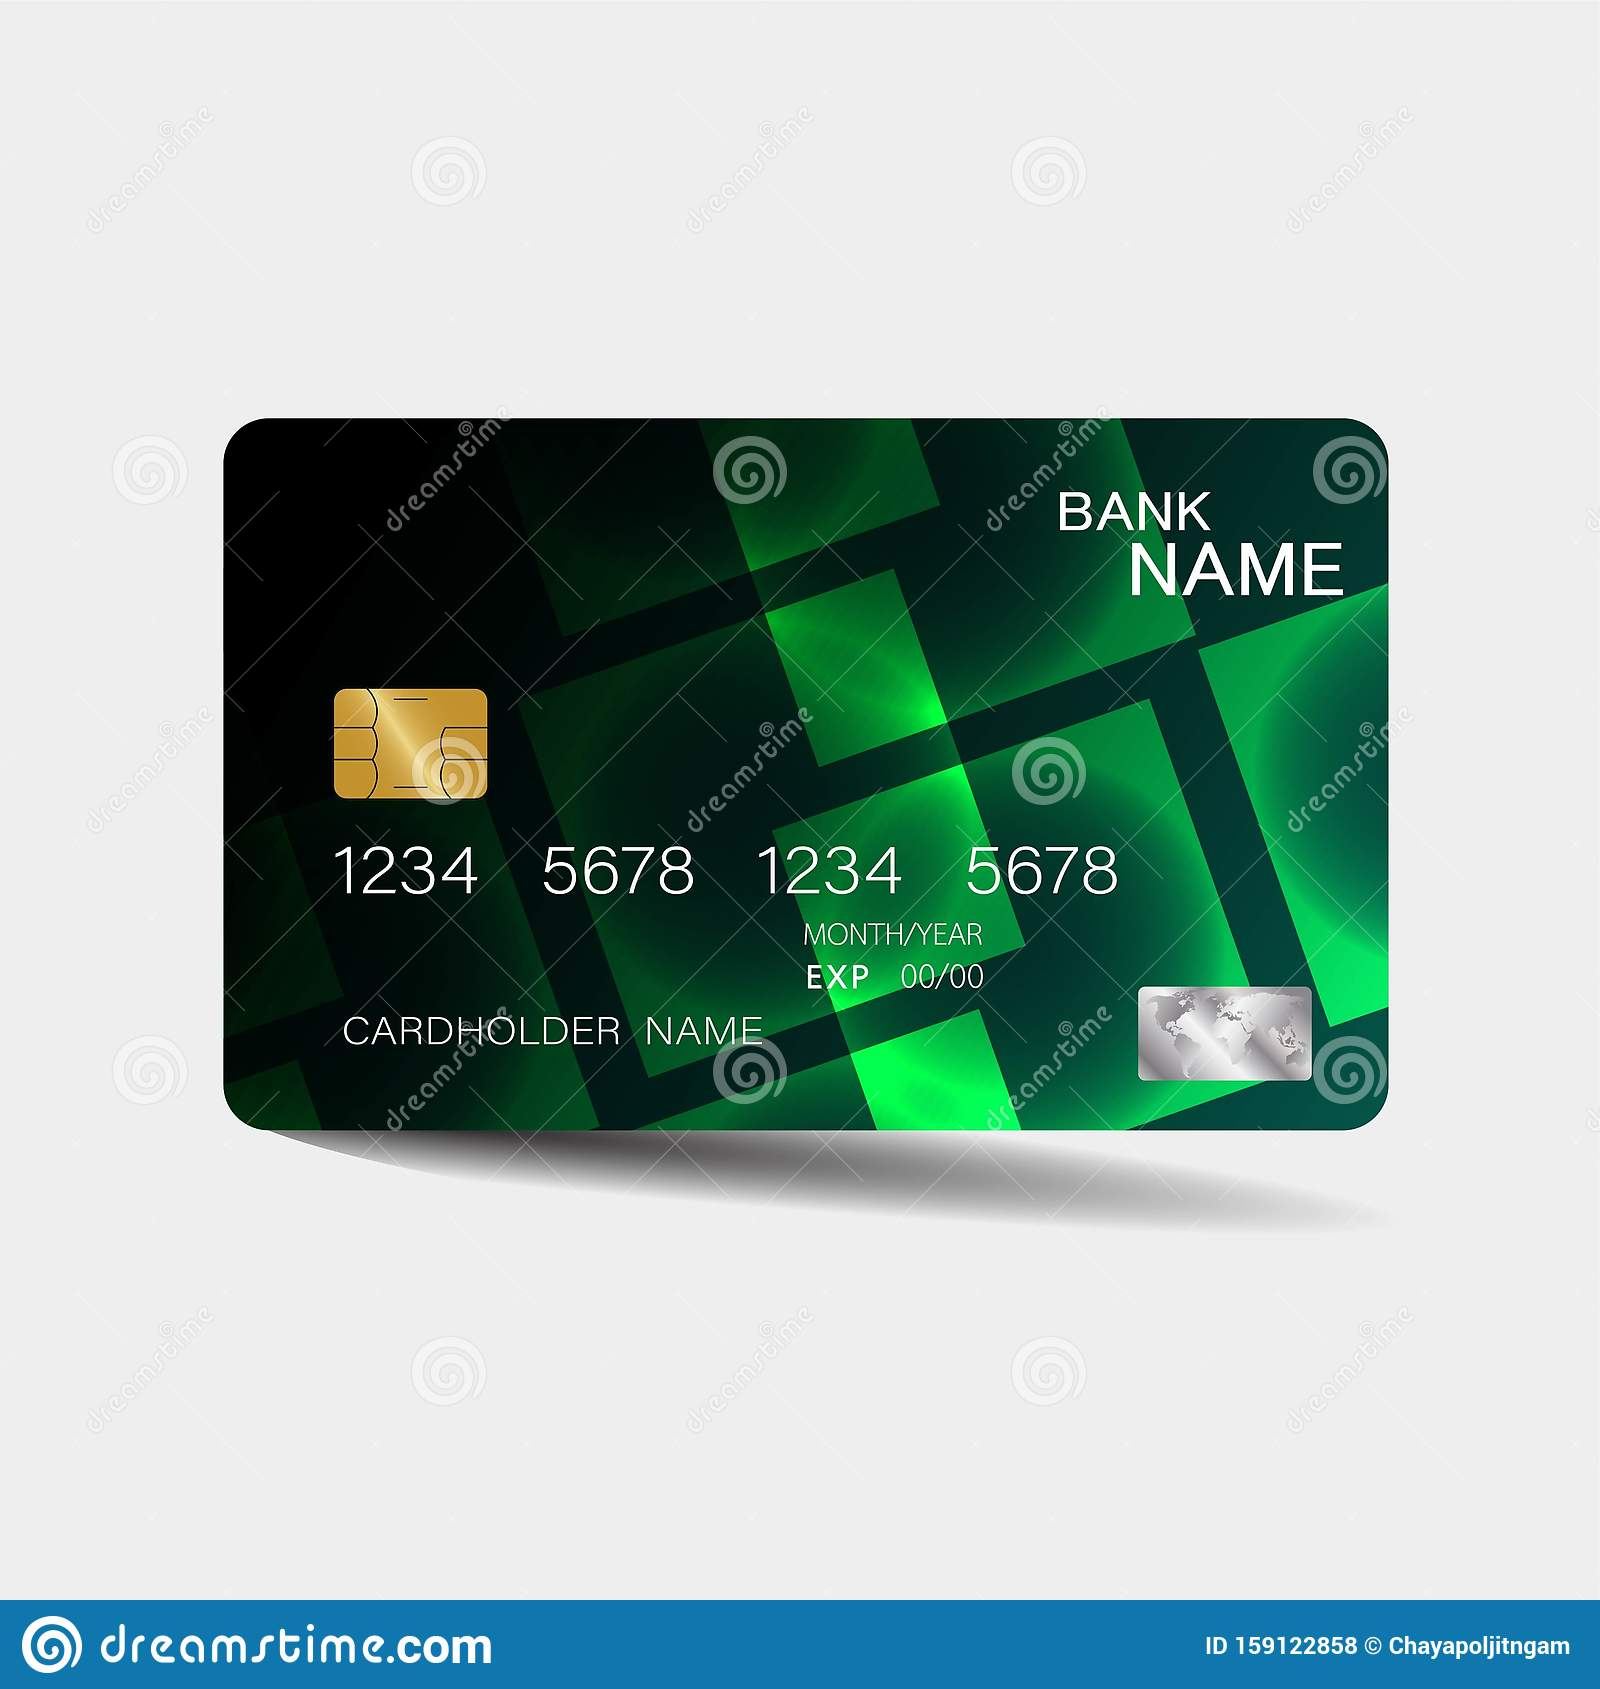 Credit card. With green elements design. And inspiration from abstract.